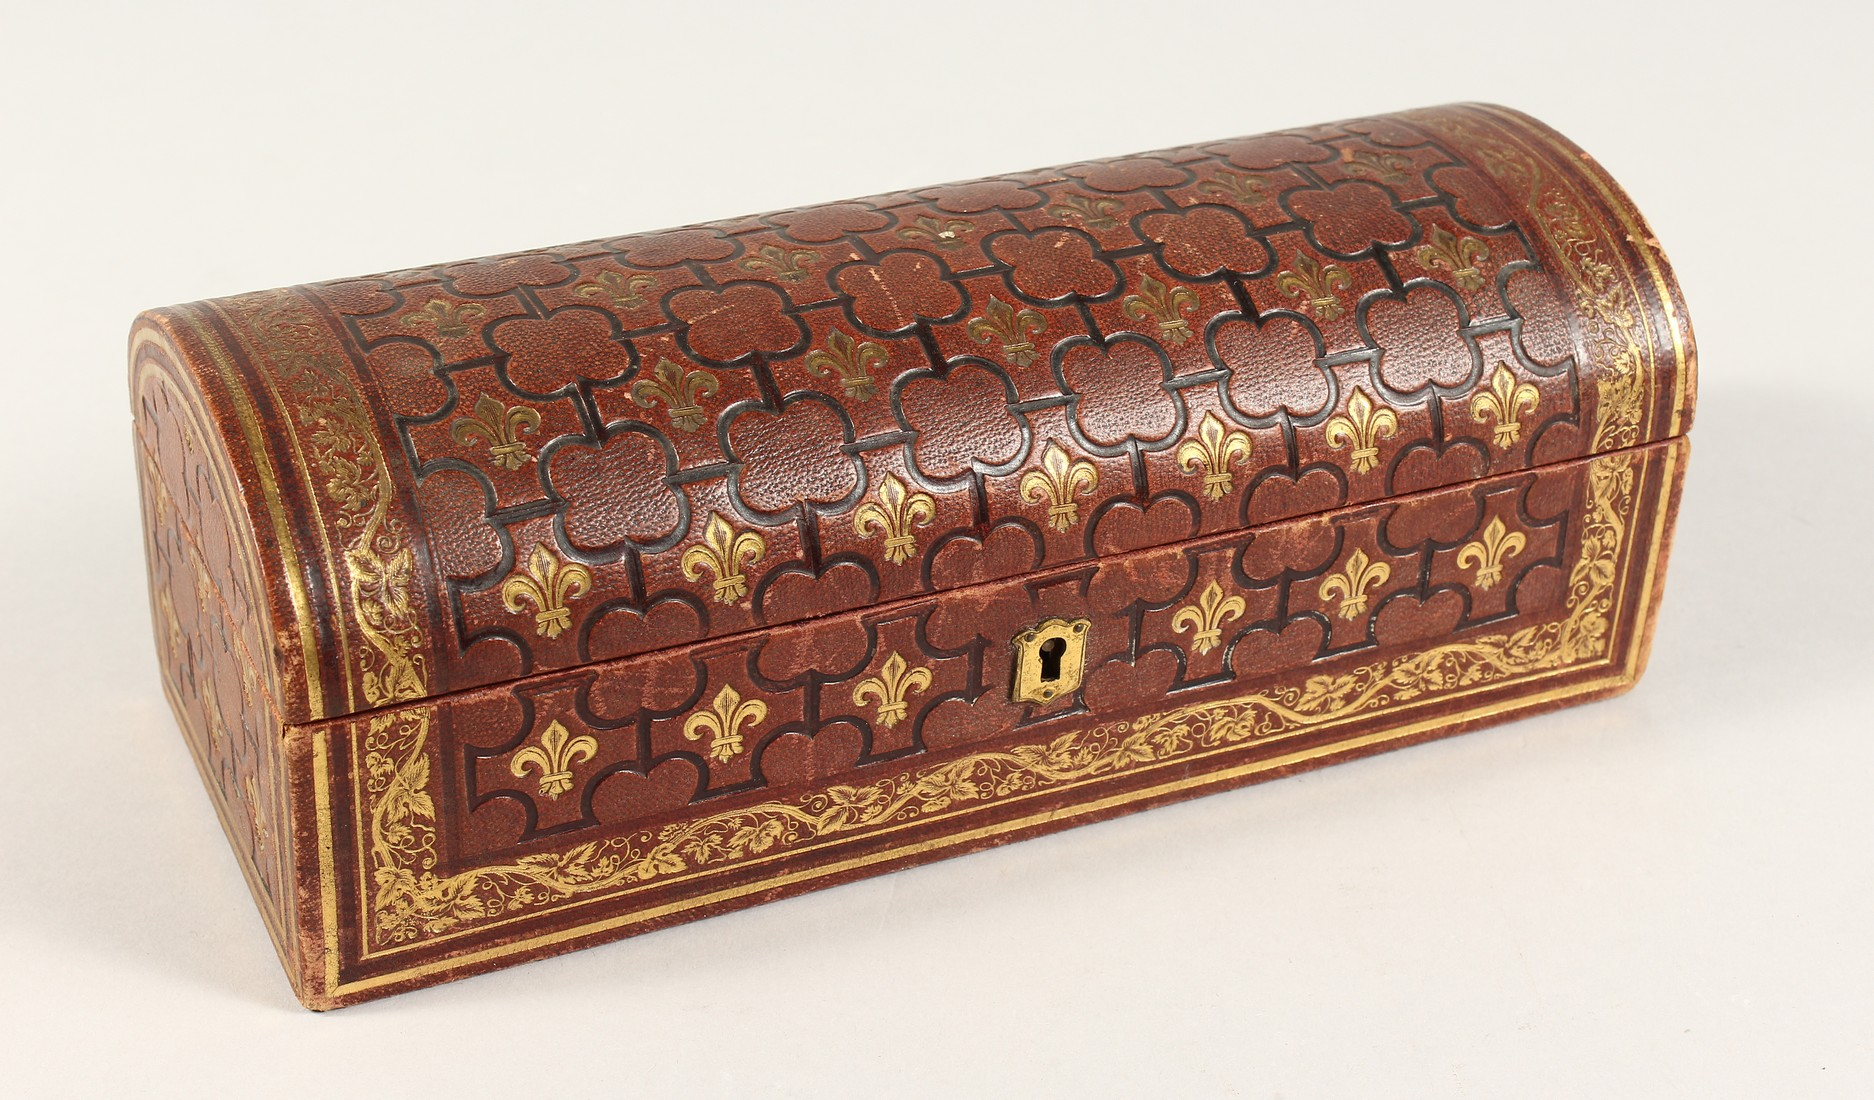 A FRENCH FLEUR D LYS DOMED LEATHER BOX 9.5ins long